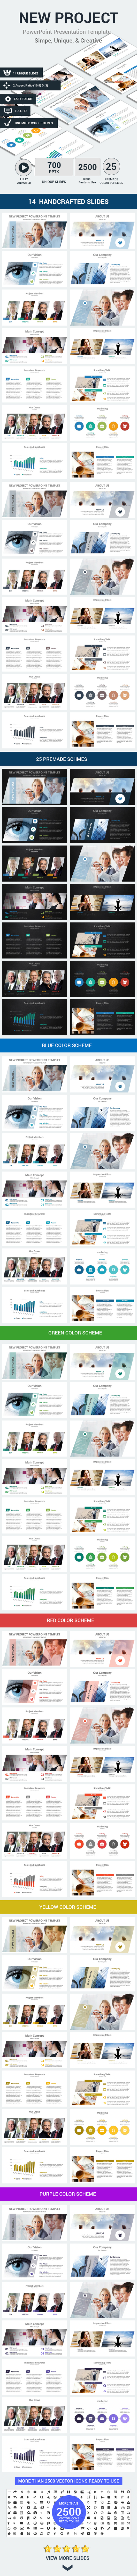 New Project PowerPoint Presentation Template - Business PowerPoint Templates